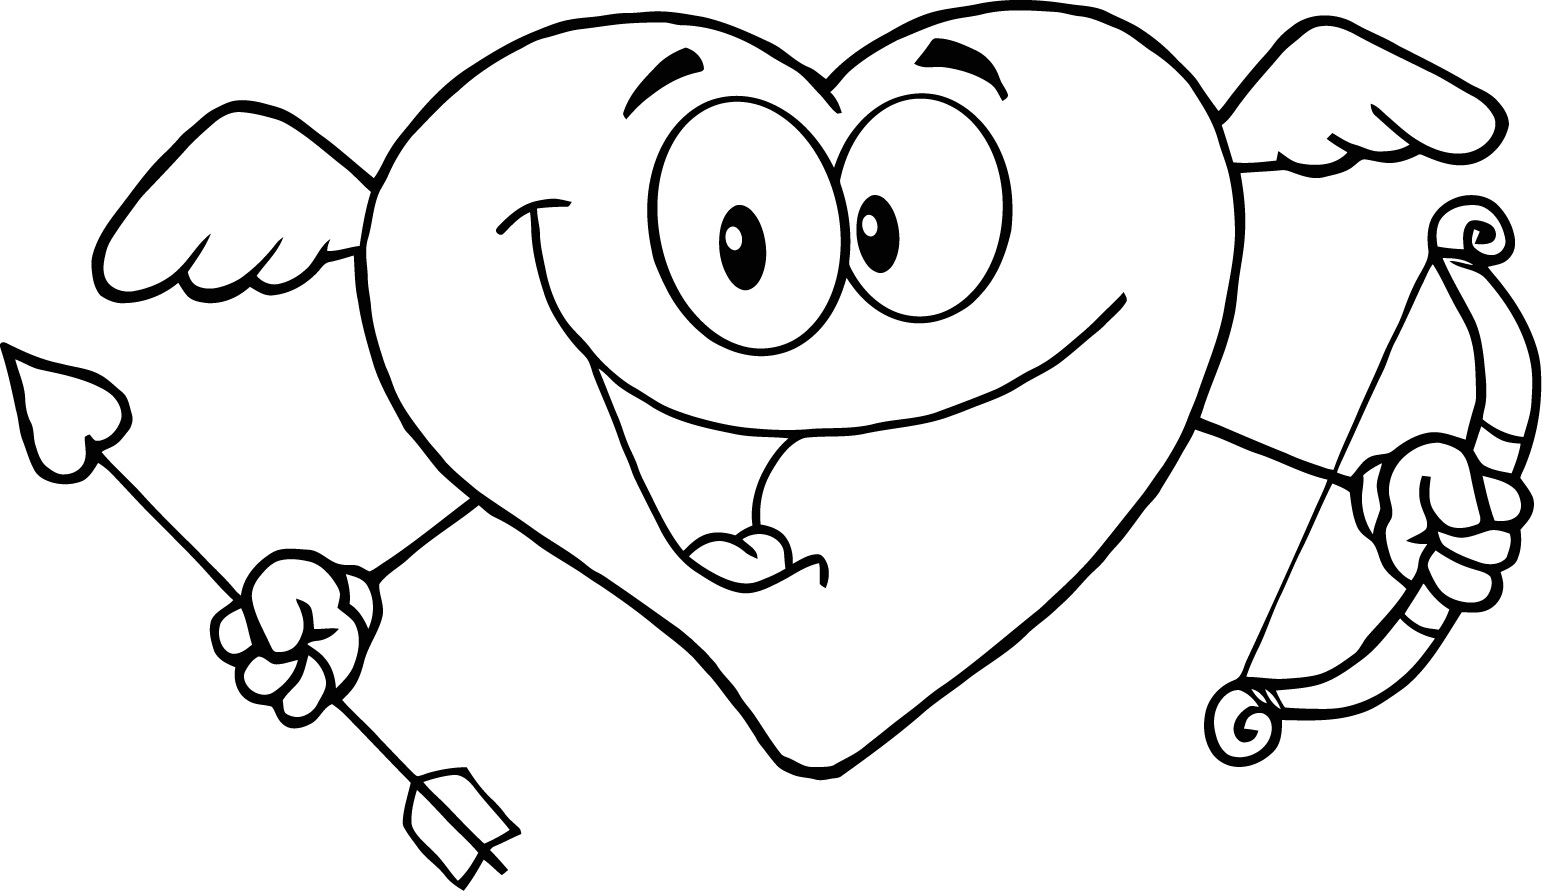 1542x891 Cute Love Coloring Page To Print Of Happy Heart For Kids